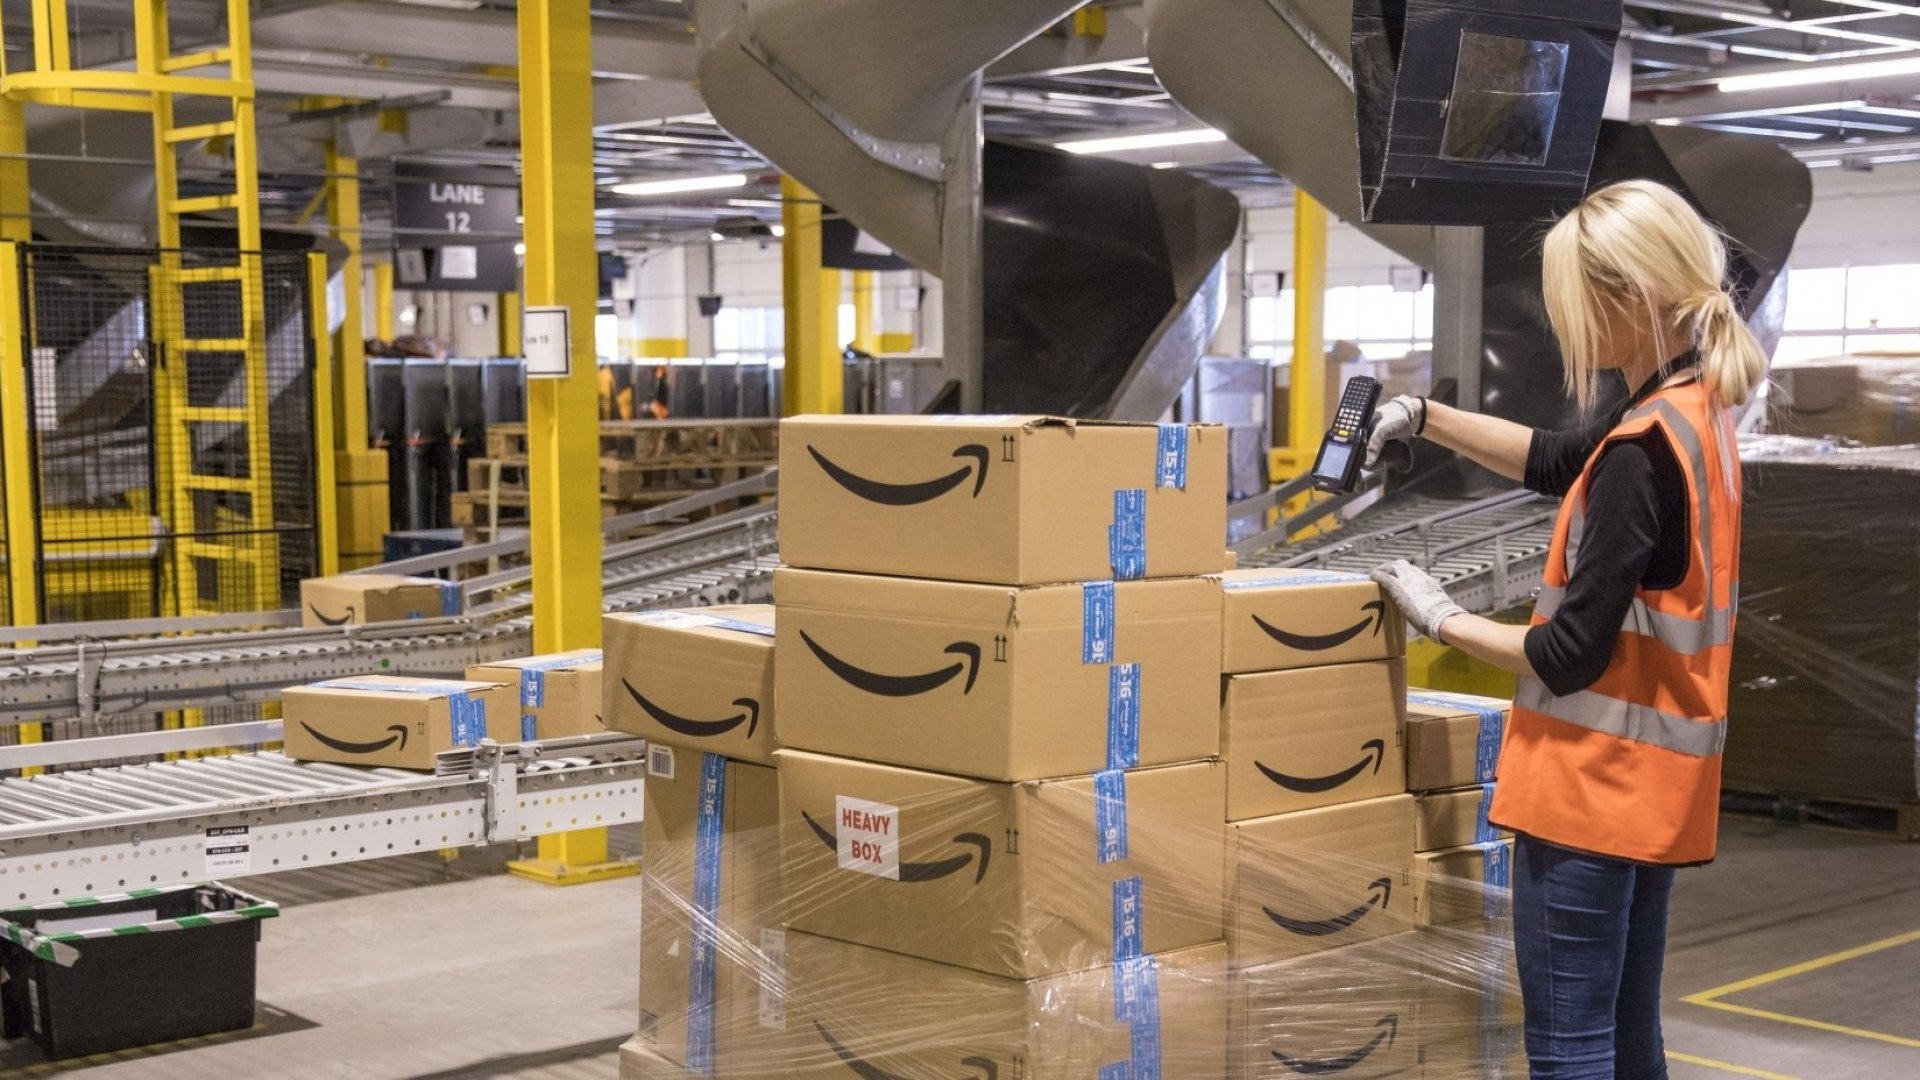 The 9 Simple Words That Made Amazon a Trillion-Dollar Company